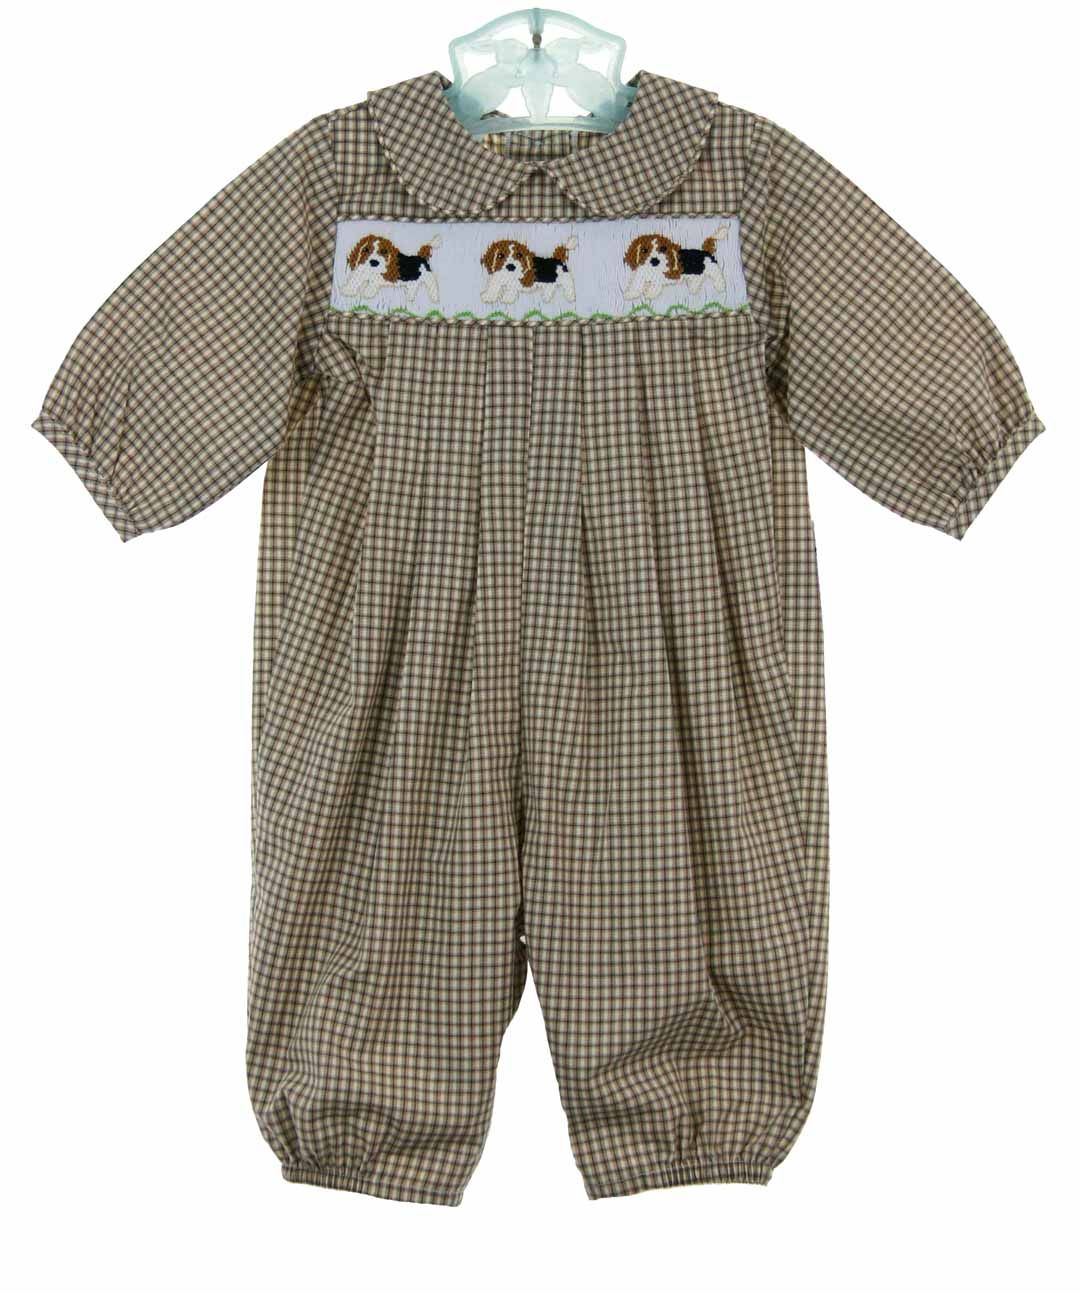 a3e2185cc NEW Bailey Boys Brown Plaid Smocked Longall with Embroidered Puppies ...